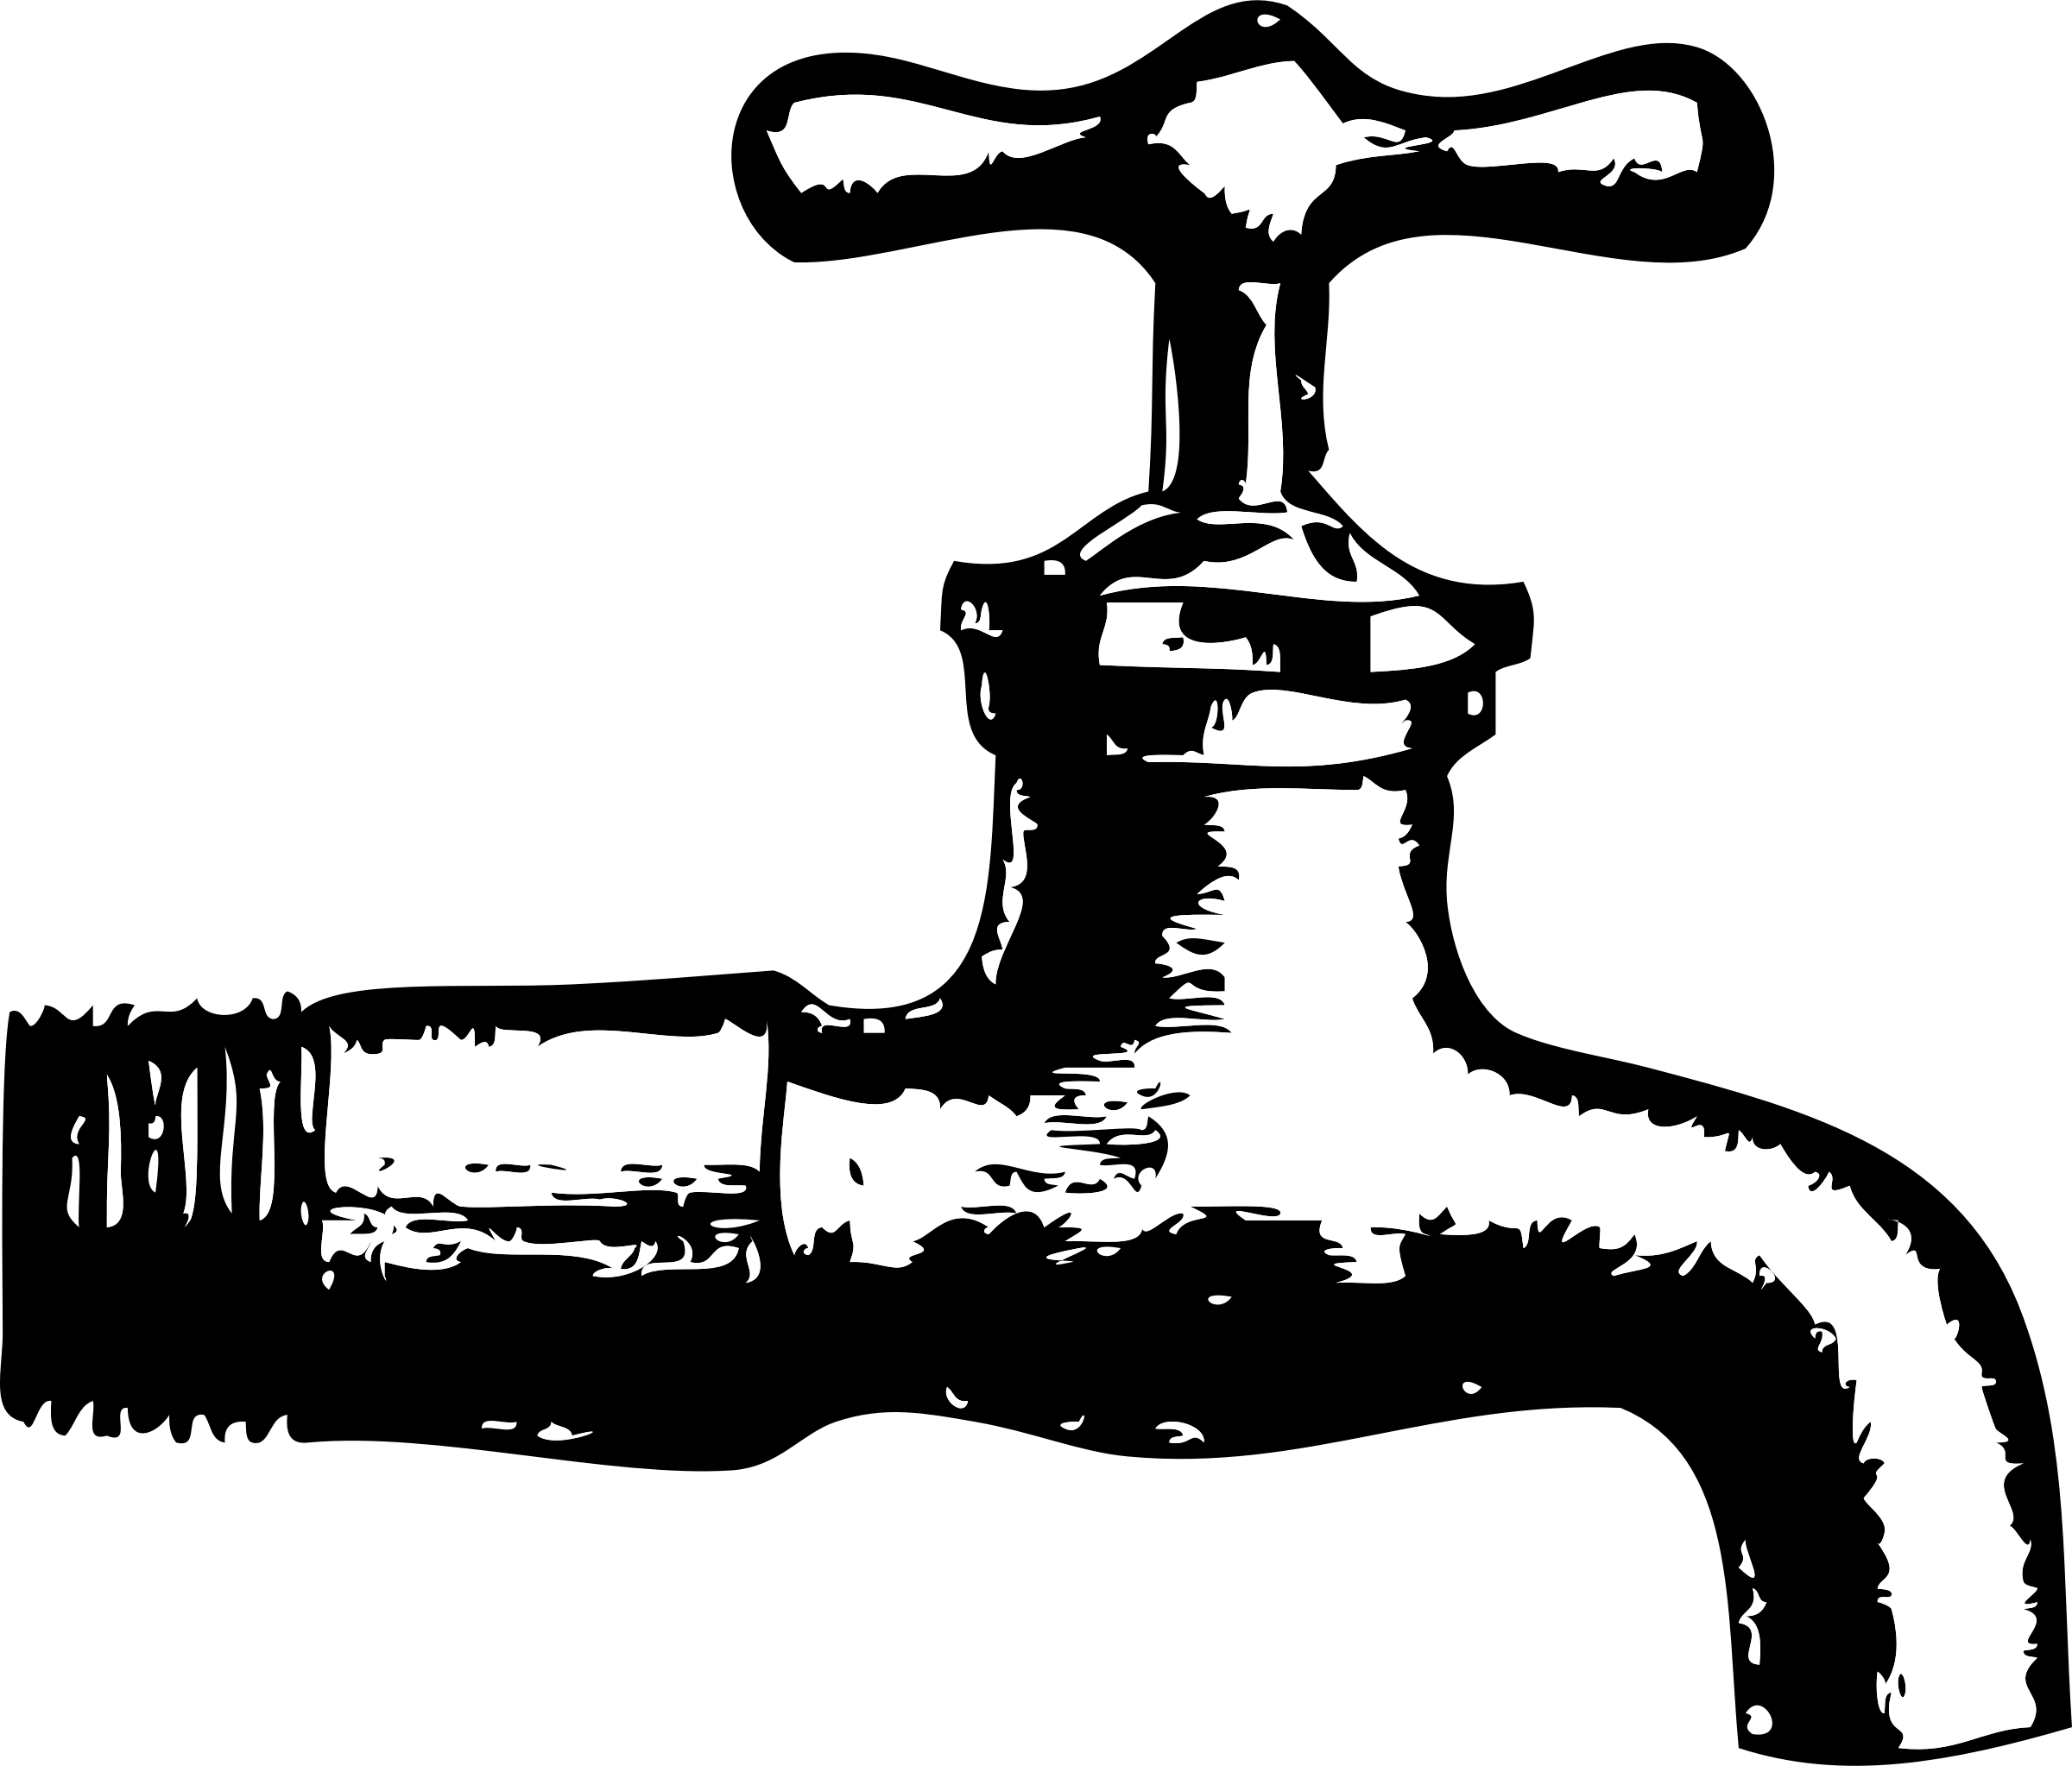 Big image png. Faucet clipart black and white